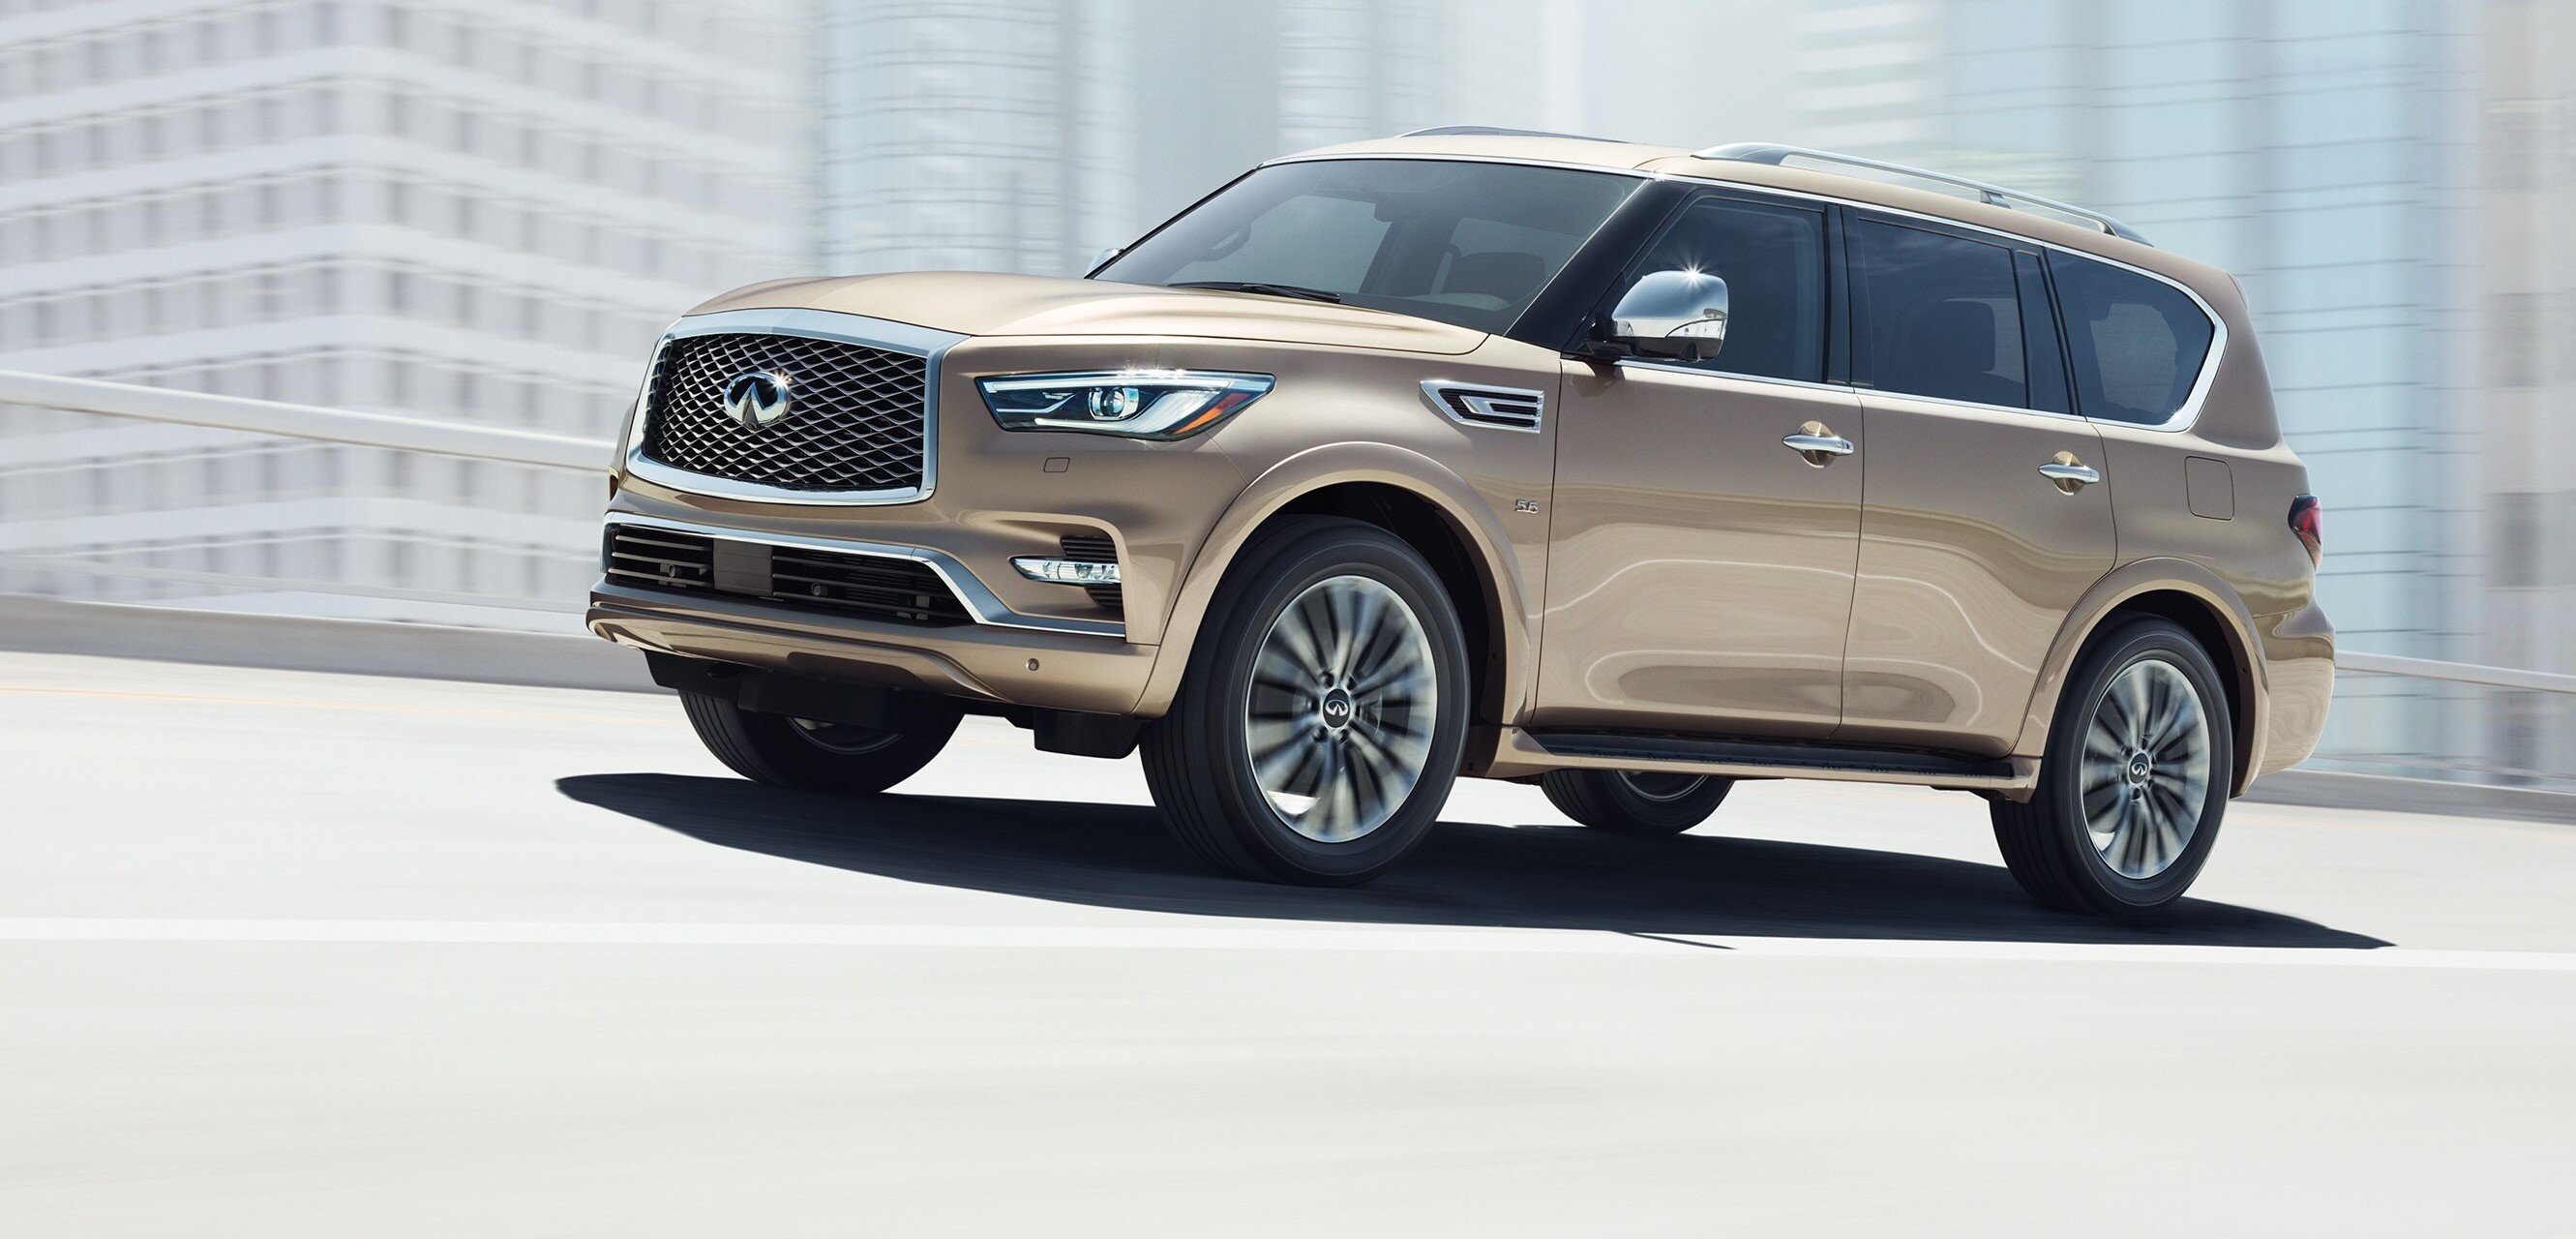 Image result for infiniti qx80